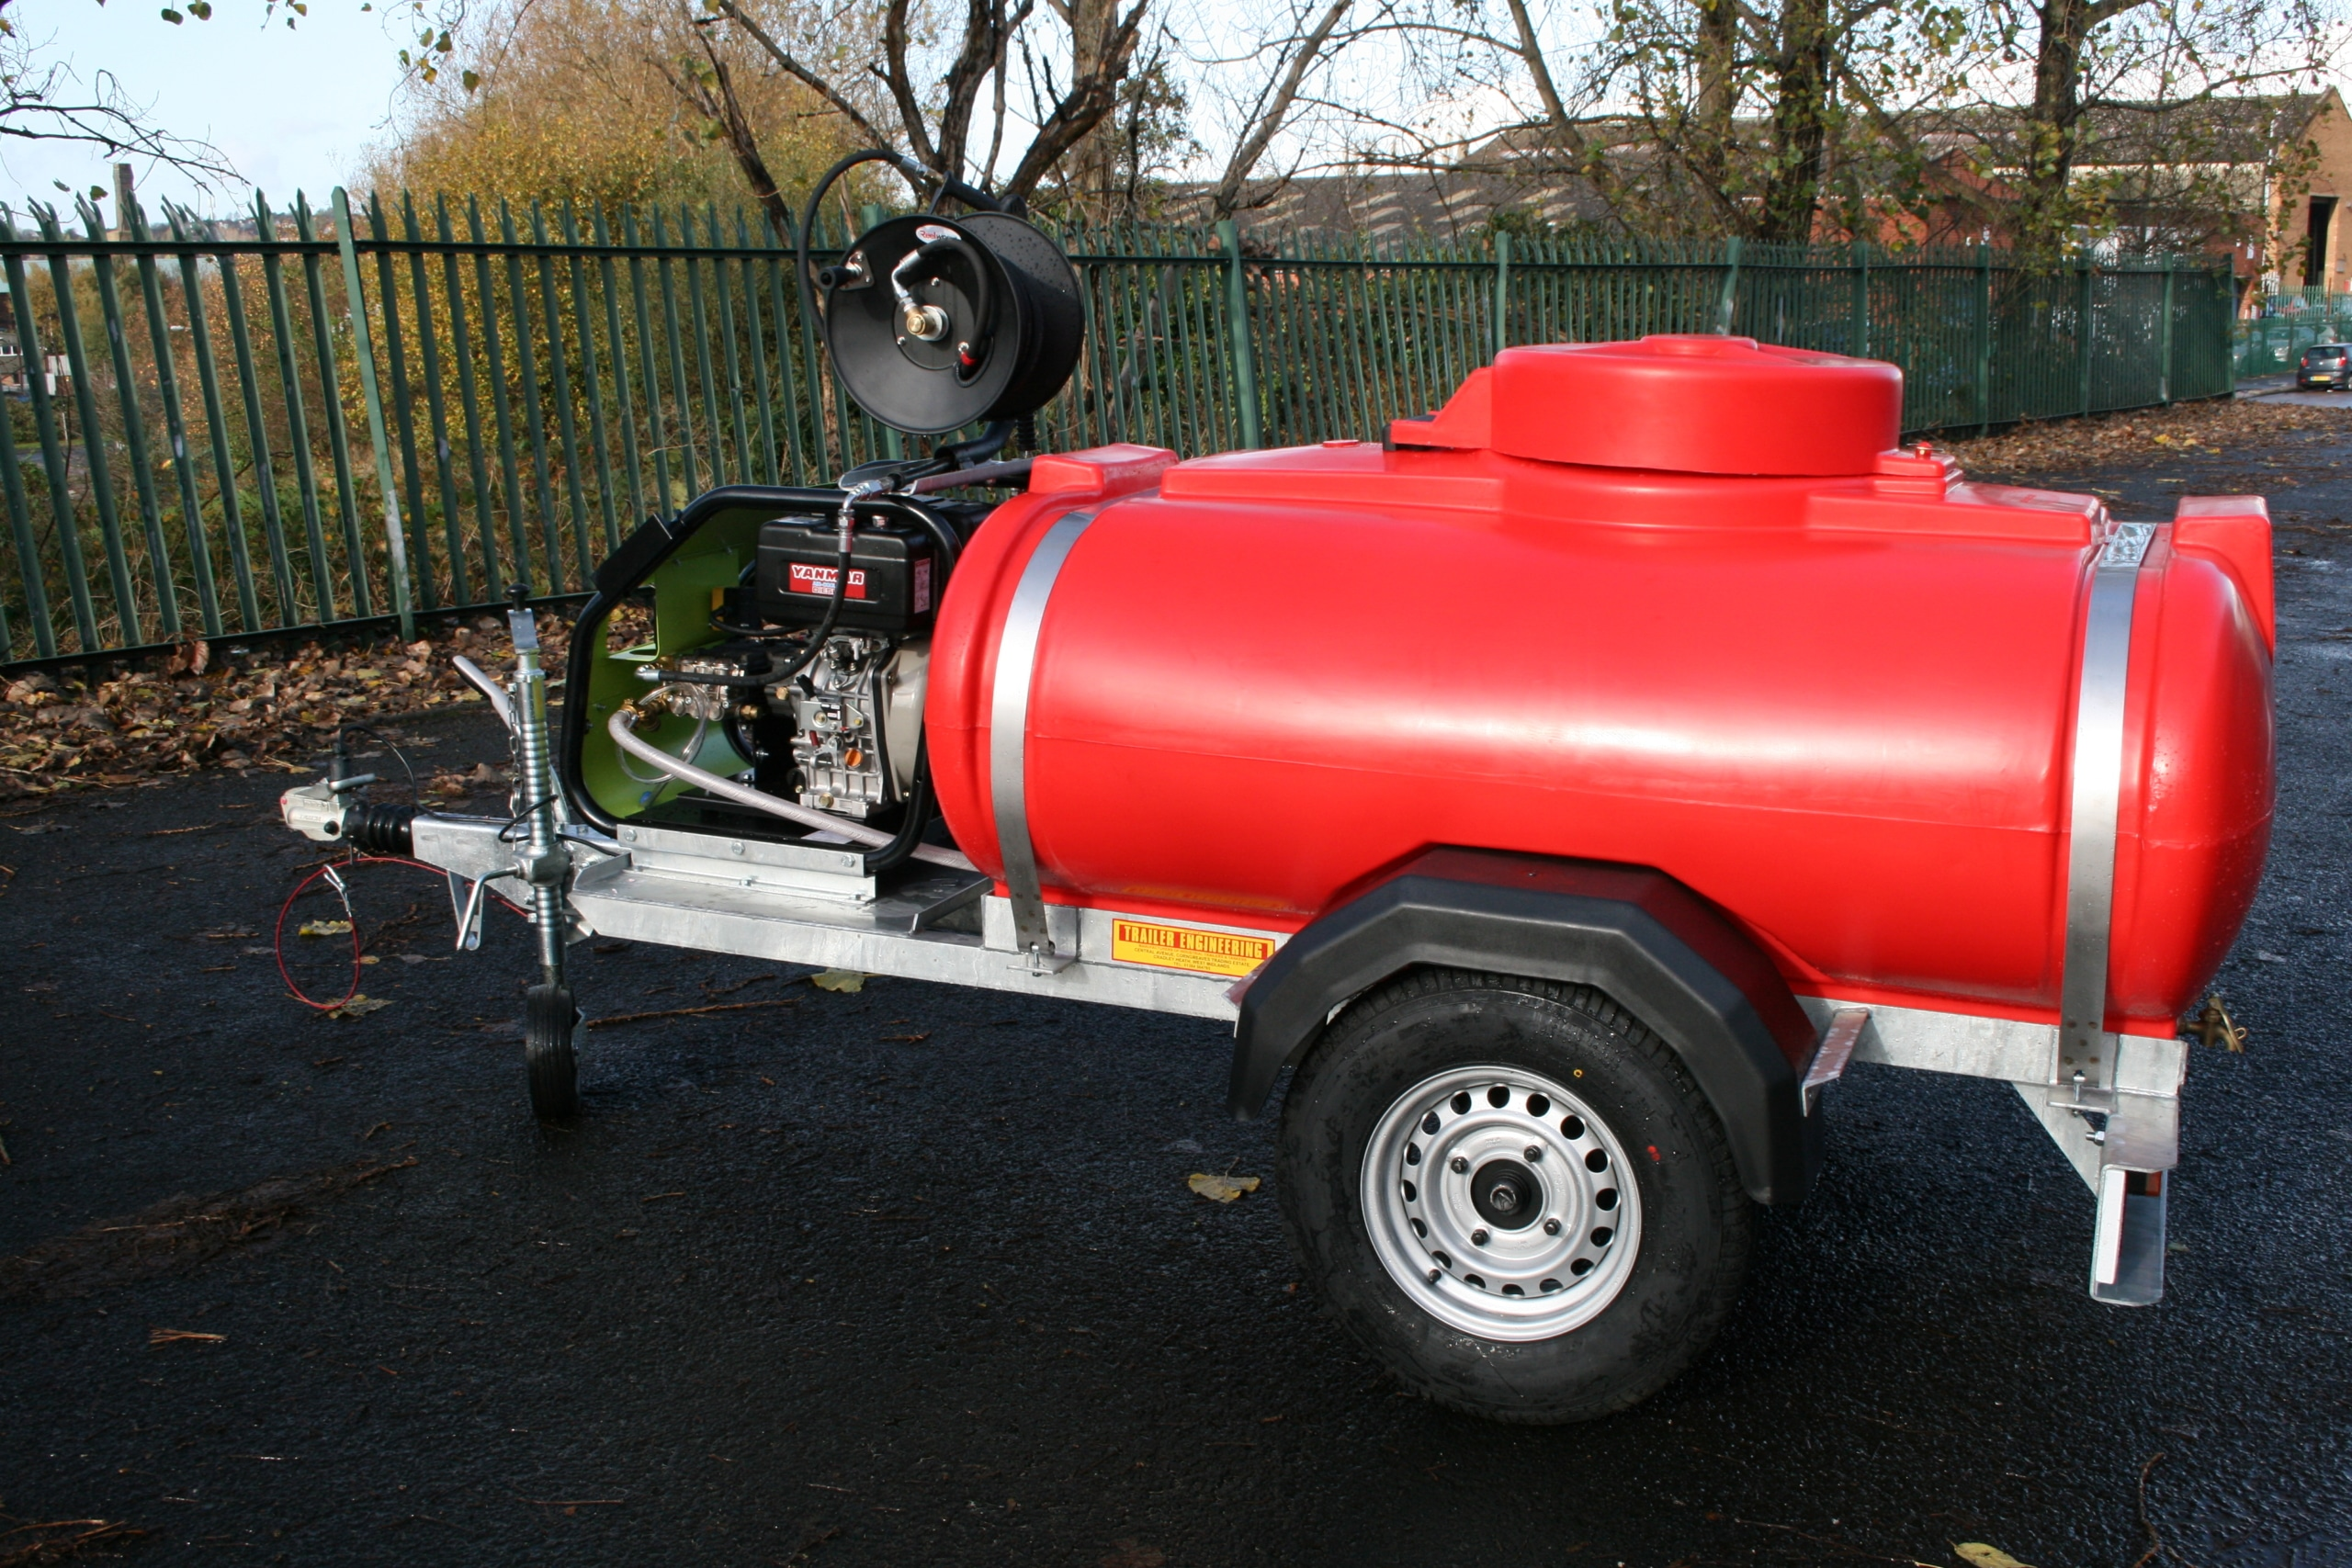 1125 litre water bowser with pressure washer